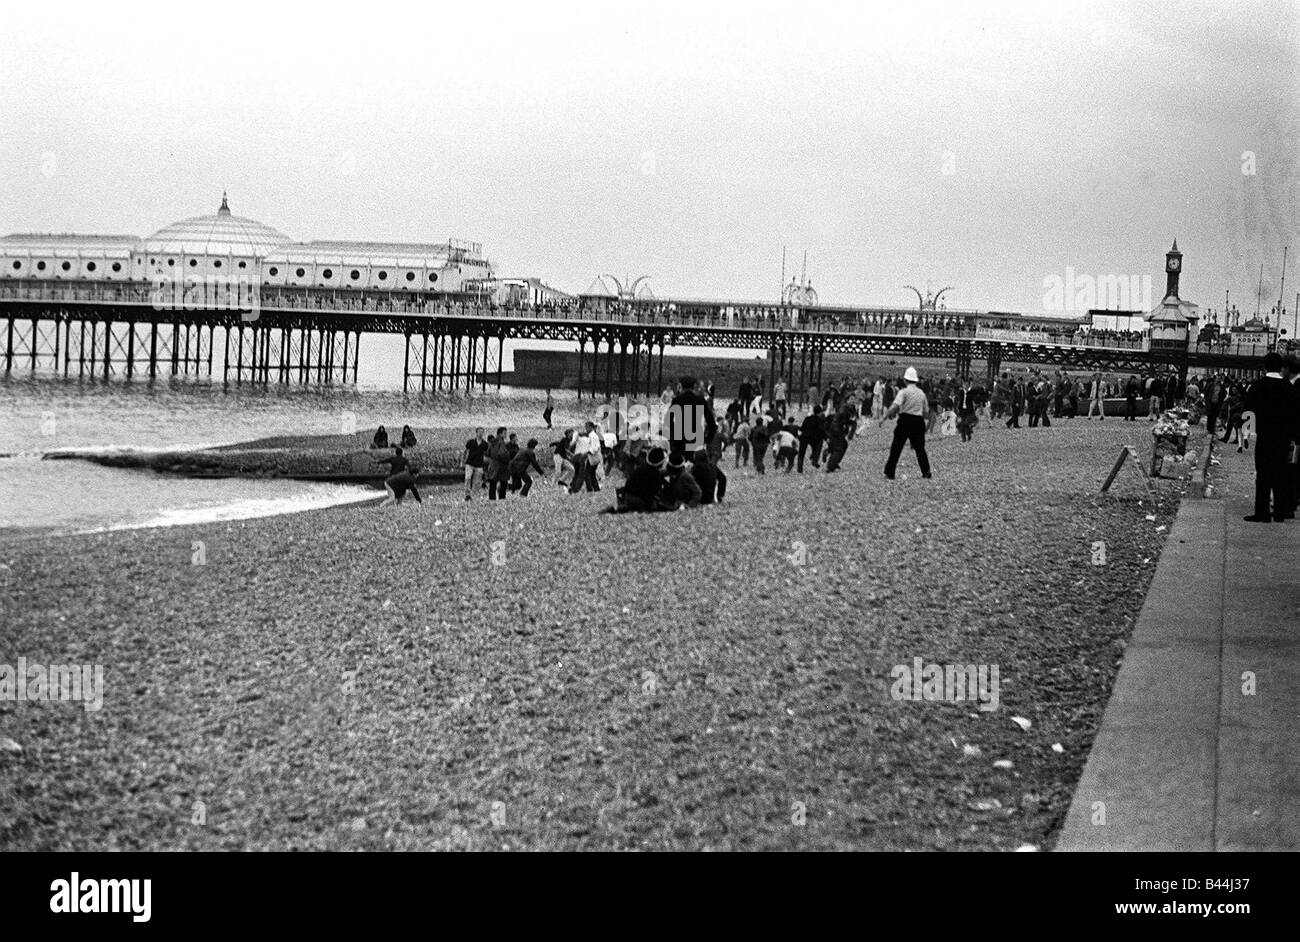 Mods and rockers clash on Brighton beach during bank 1964 holiday - Stock Image